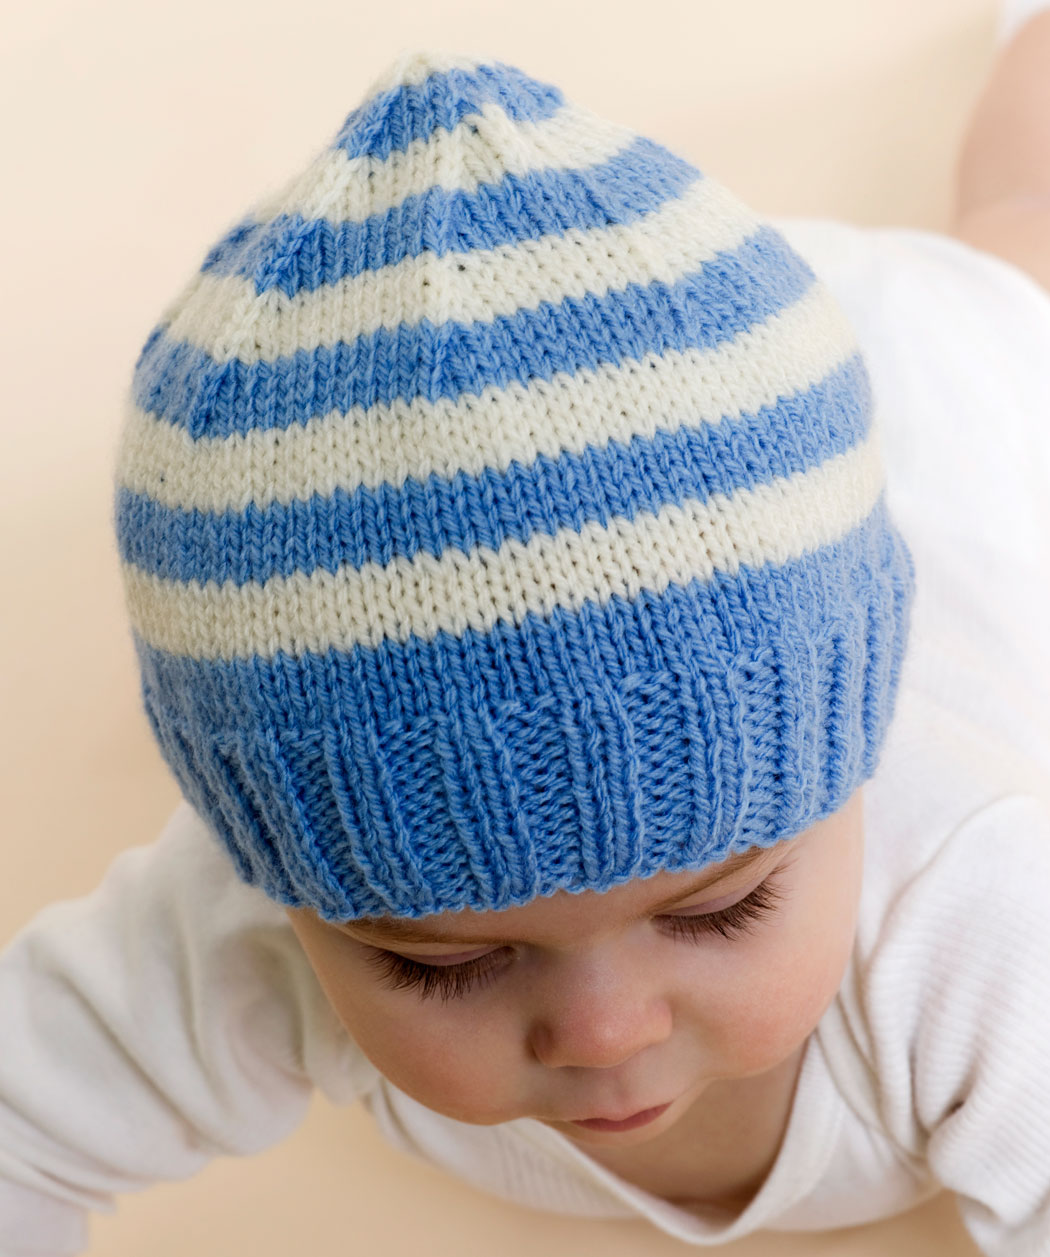 Knitting Patterns For New Baby : Knitting Hats   Tag Hats